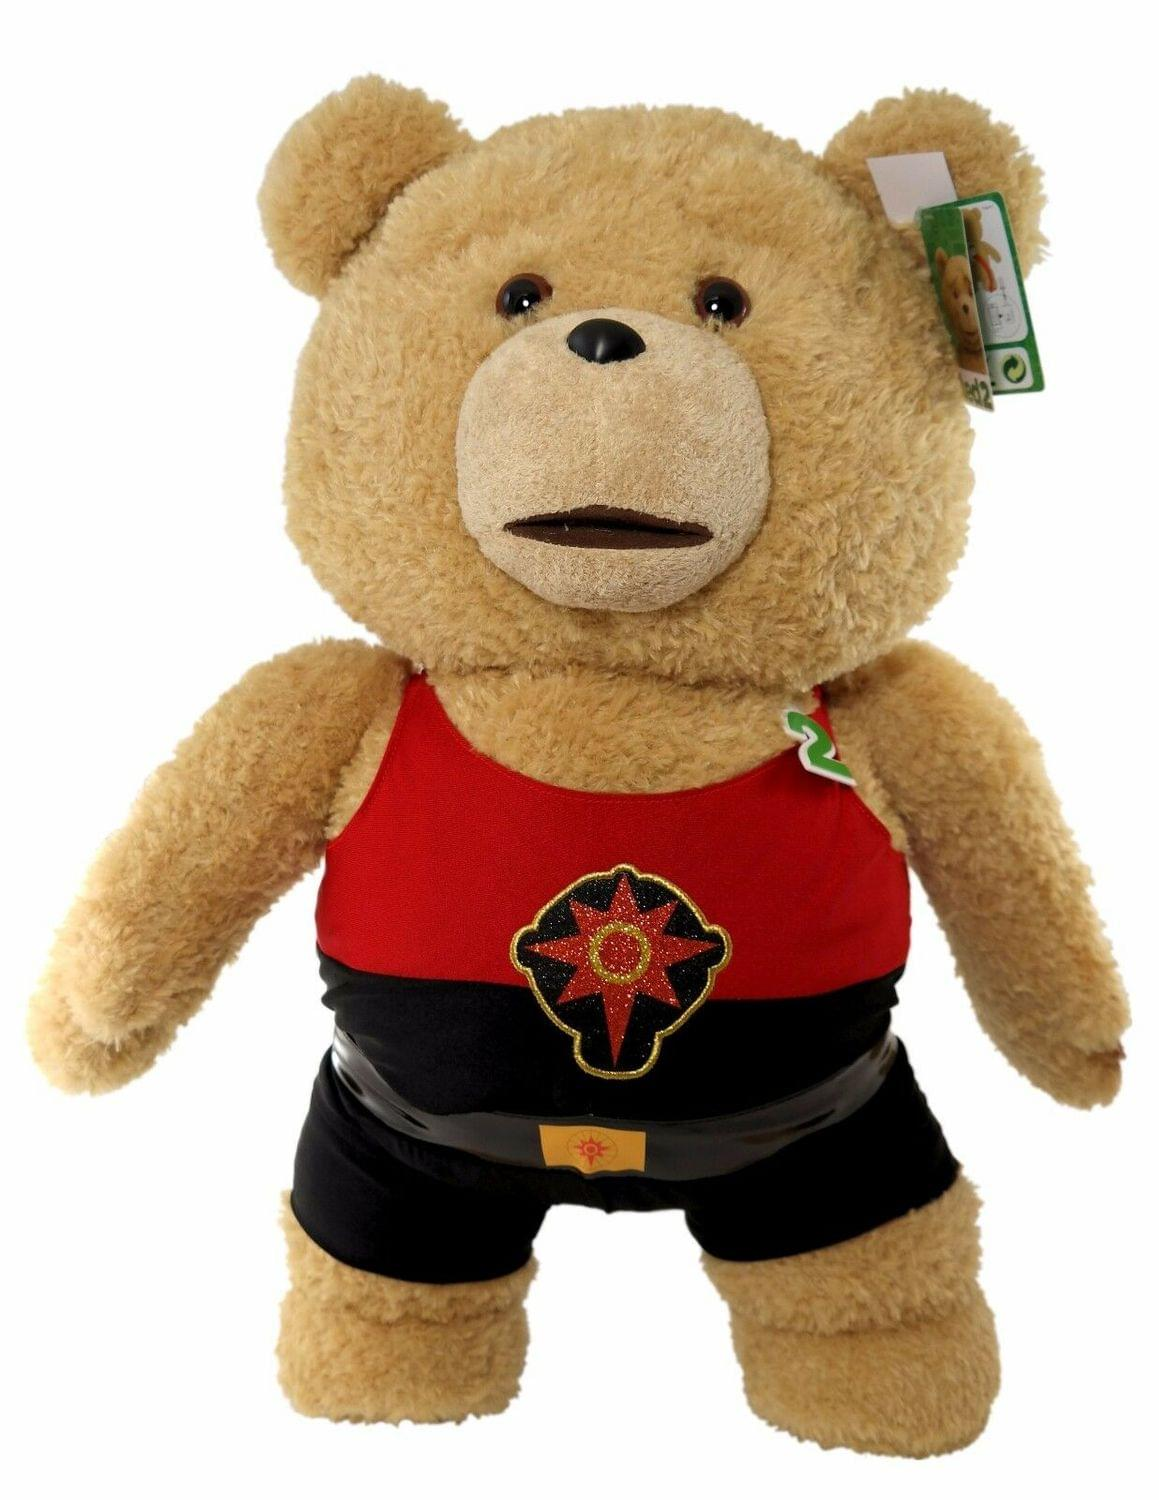 Ted 2 Talking Ted In Flash Outfit 24 Inch Plush Teddy Bear - Explicit